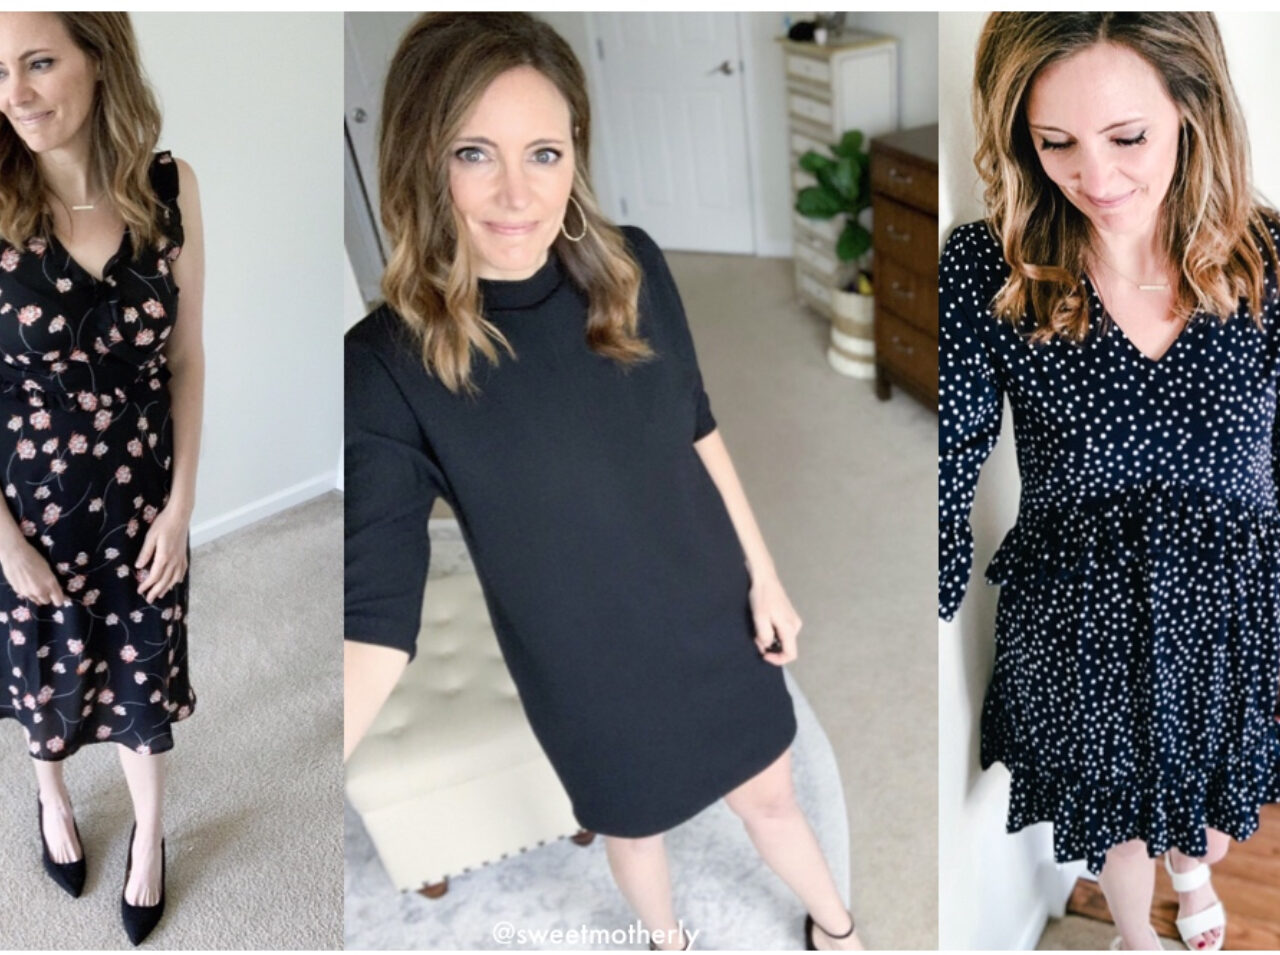 Bachelorette Party & Shower Outfits on a Budget